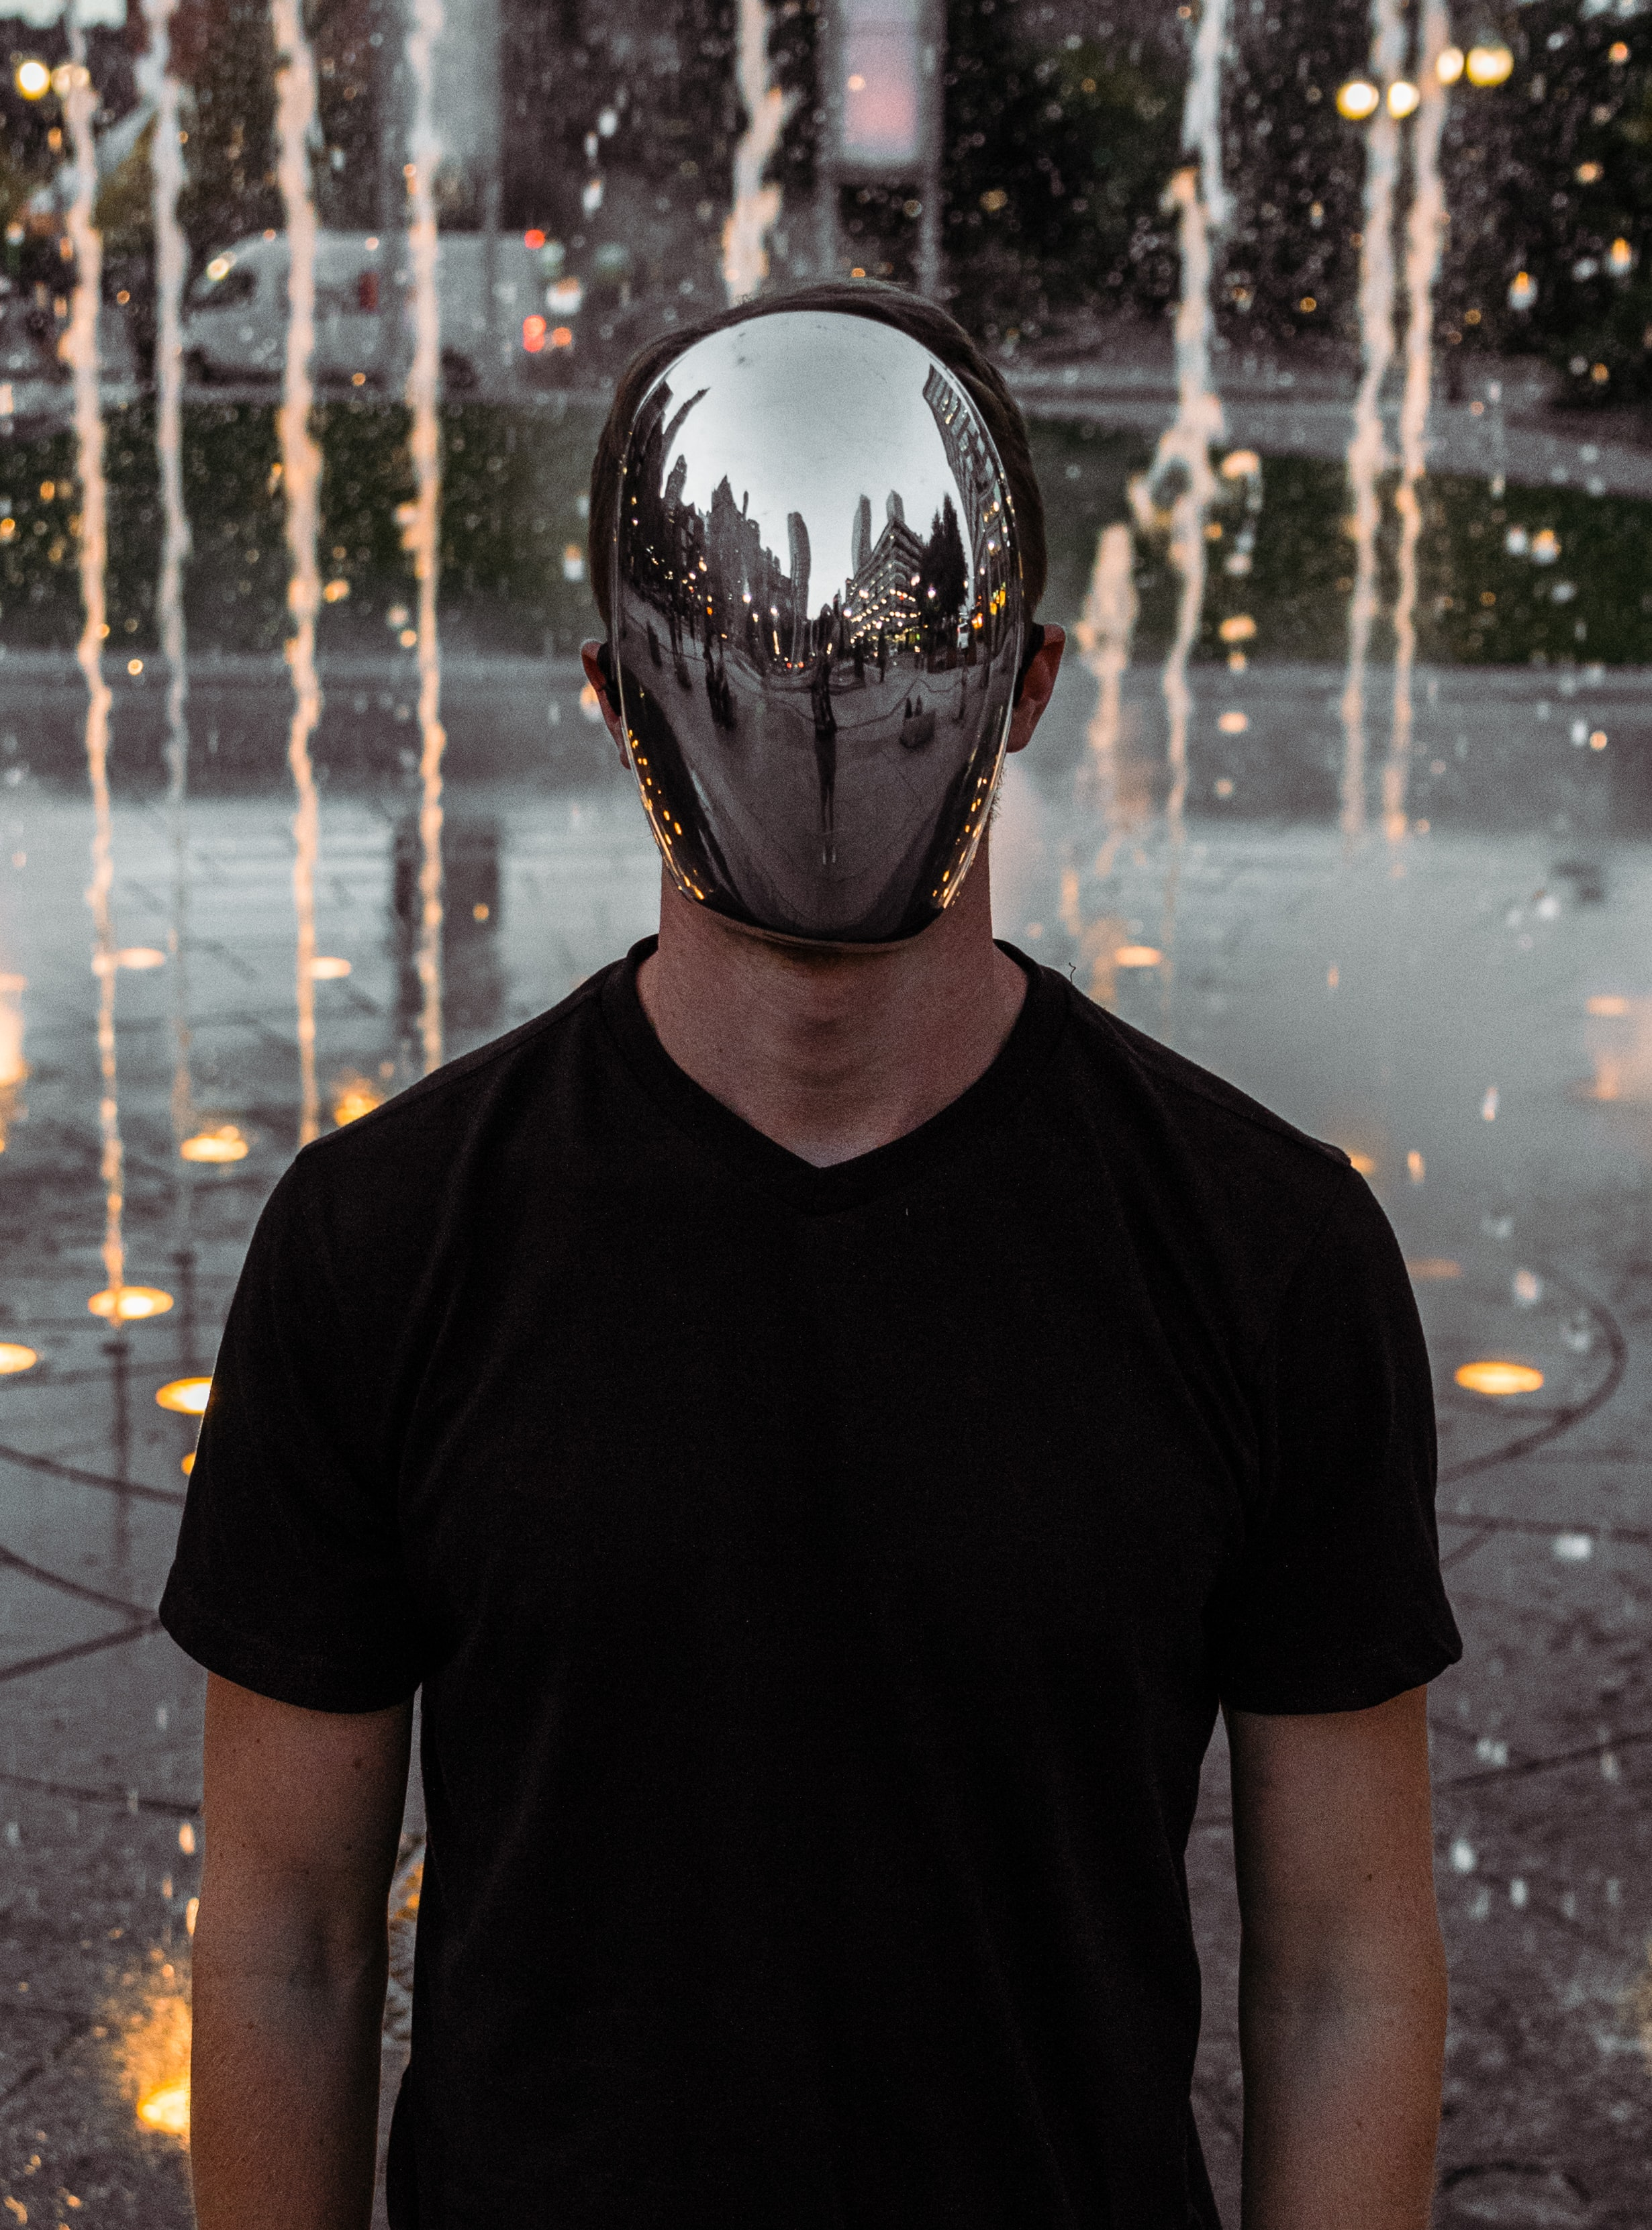 """Awareness of your own hypocrisy motivates you to look behind the mask at your inconsistencies. As the psychologist Carl Jung said, """"Everything that irritates us about others can lead us to an understanding of ourselves."""" Photo by Alex Iby on Unsplash"""